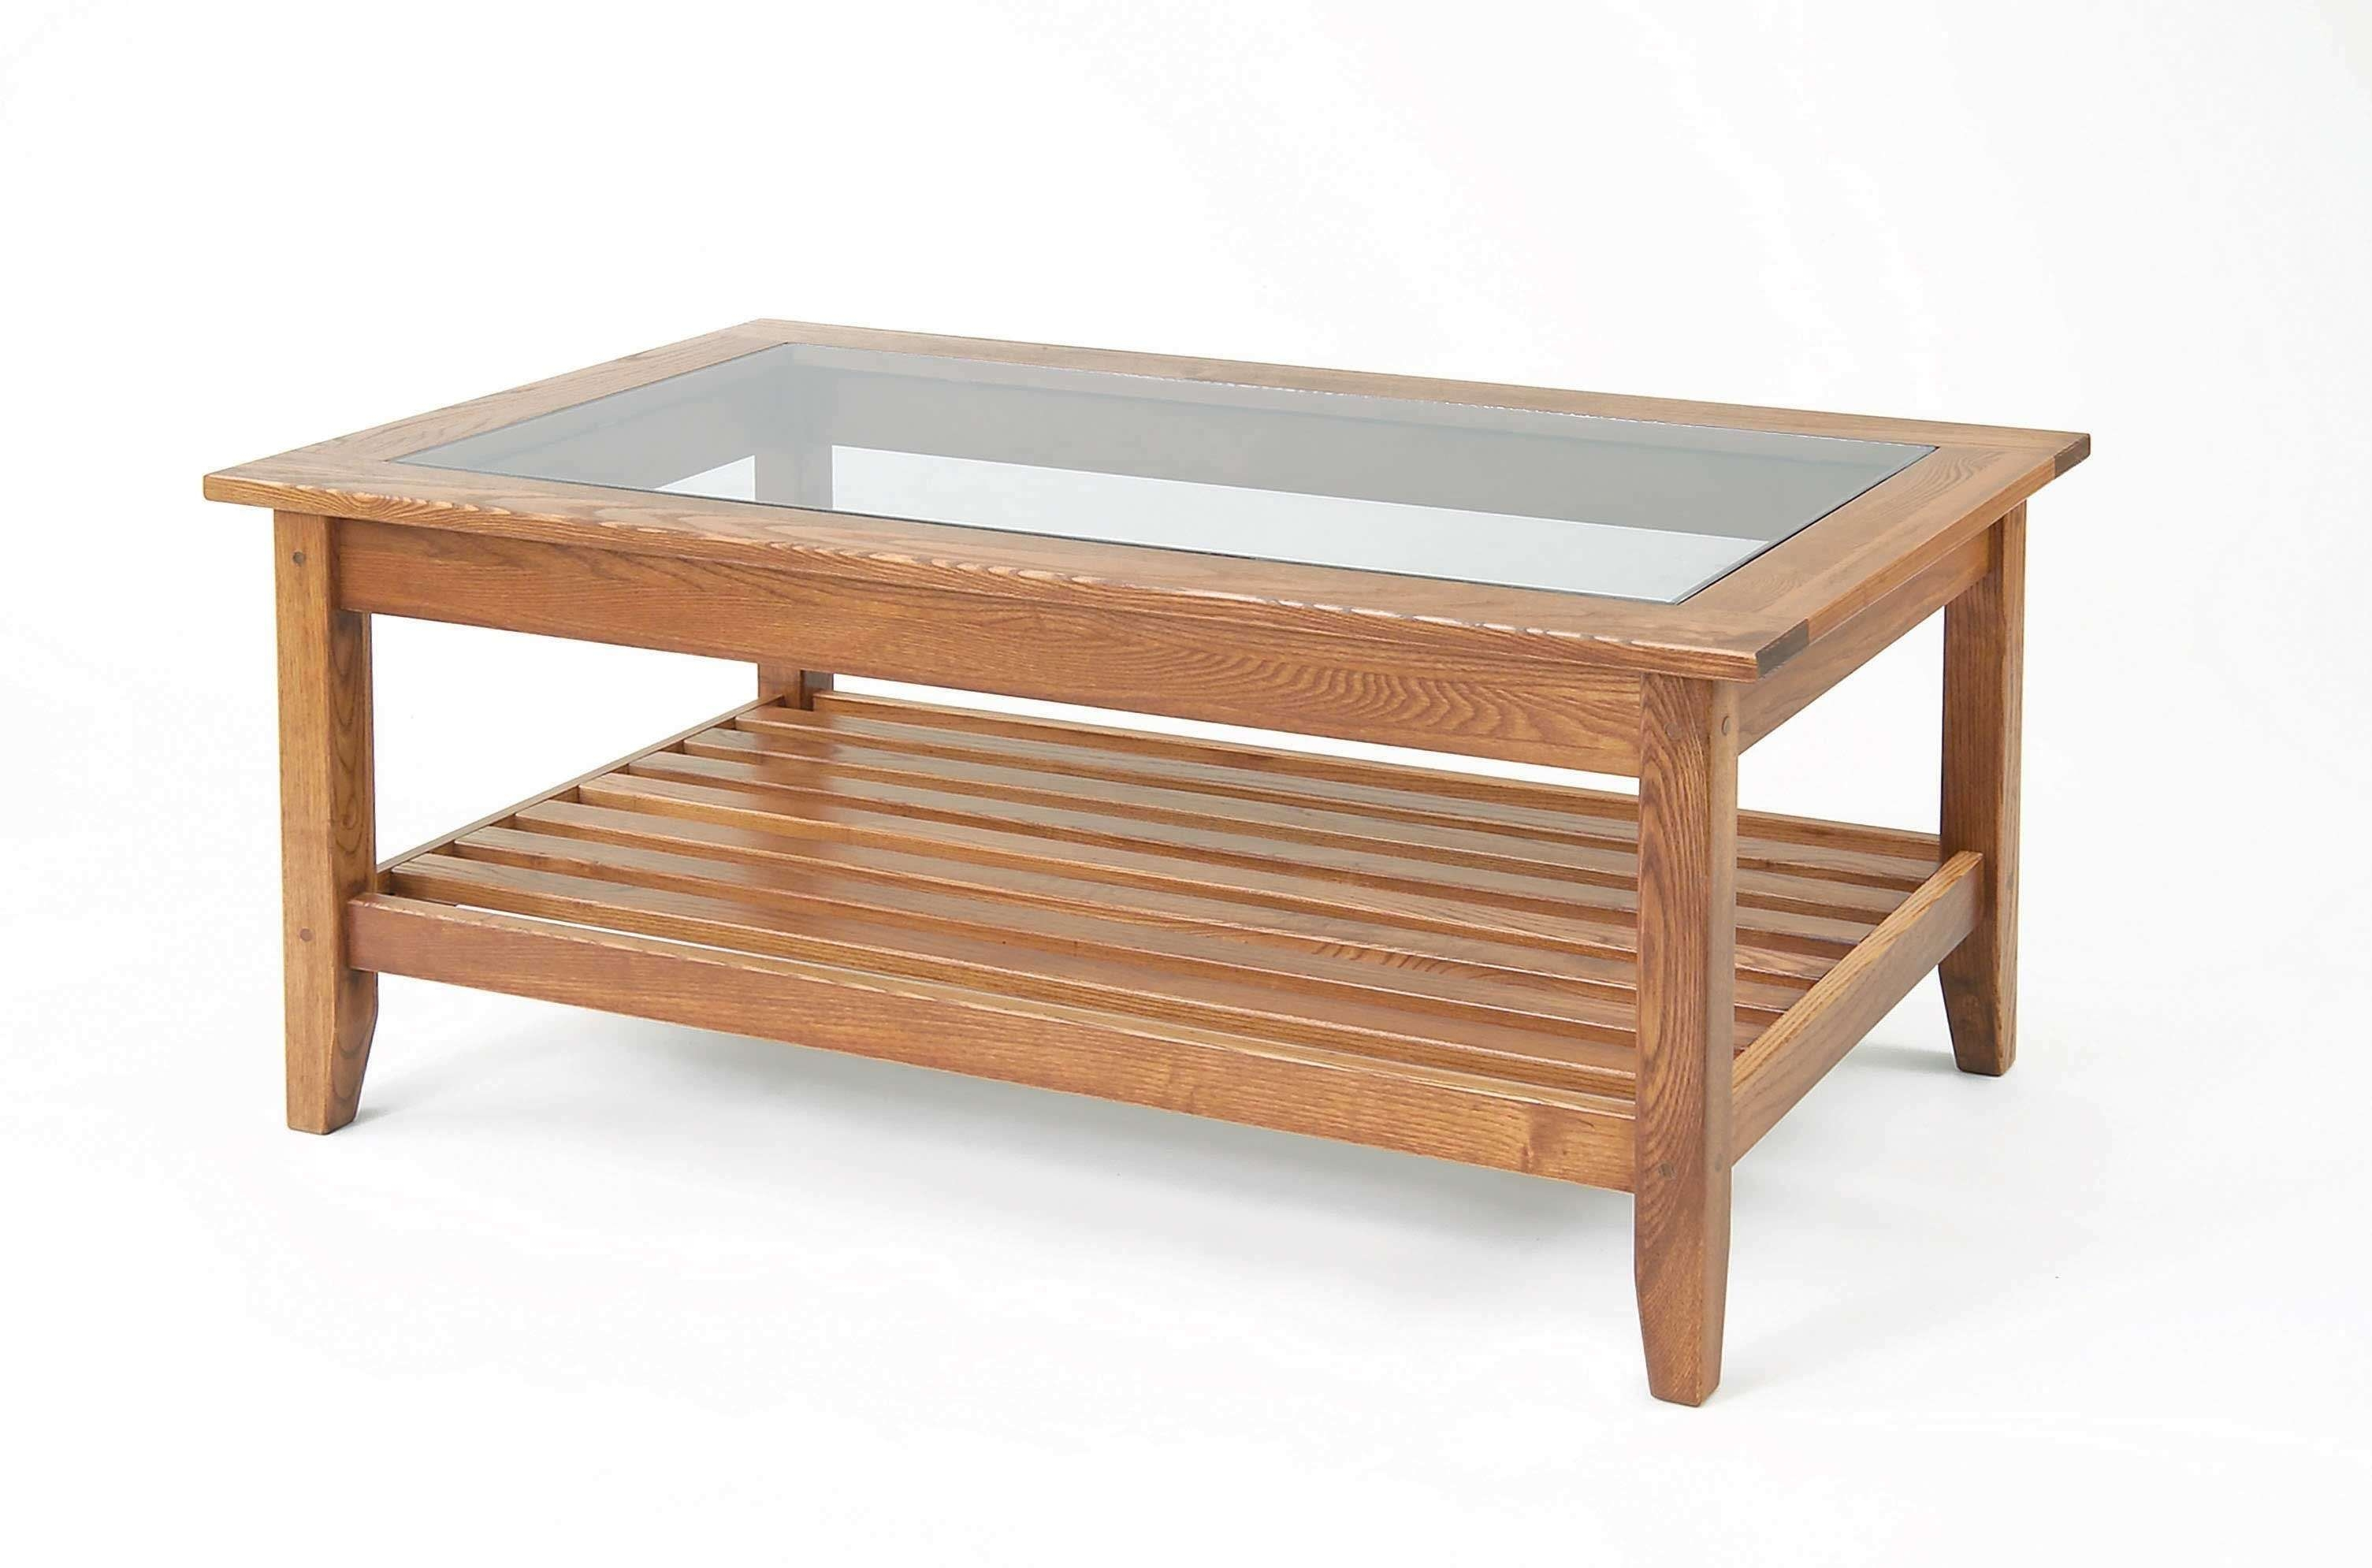 Newest Glass Top Storage Coffee Tables Pertaining To Coffee Table With Glass Top Storage And Would Work Reception Foyer (View 17 of 20)